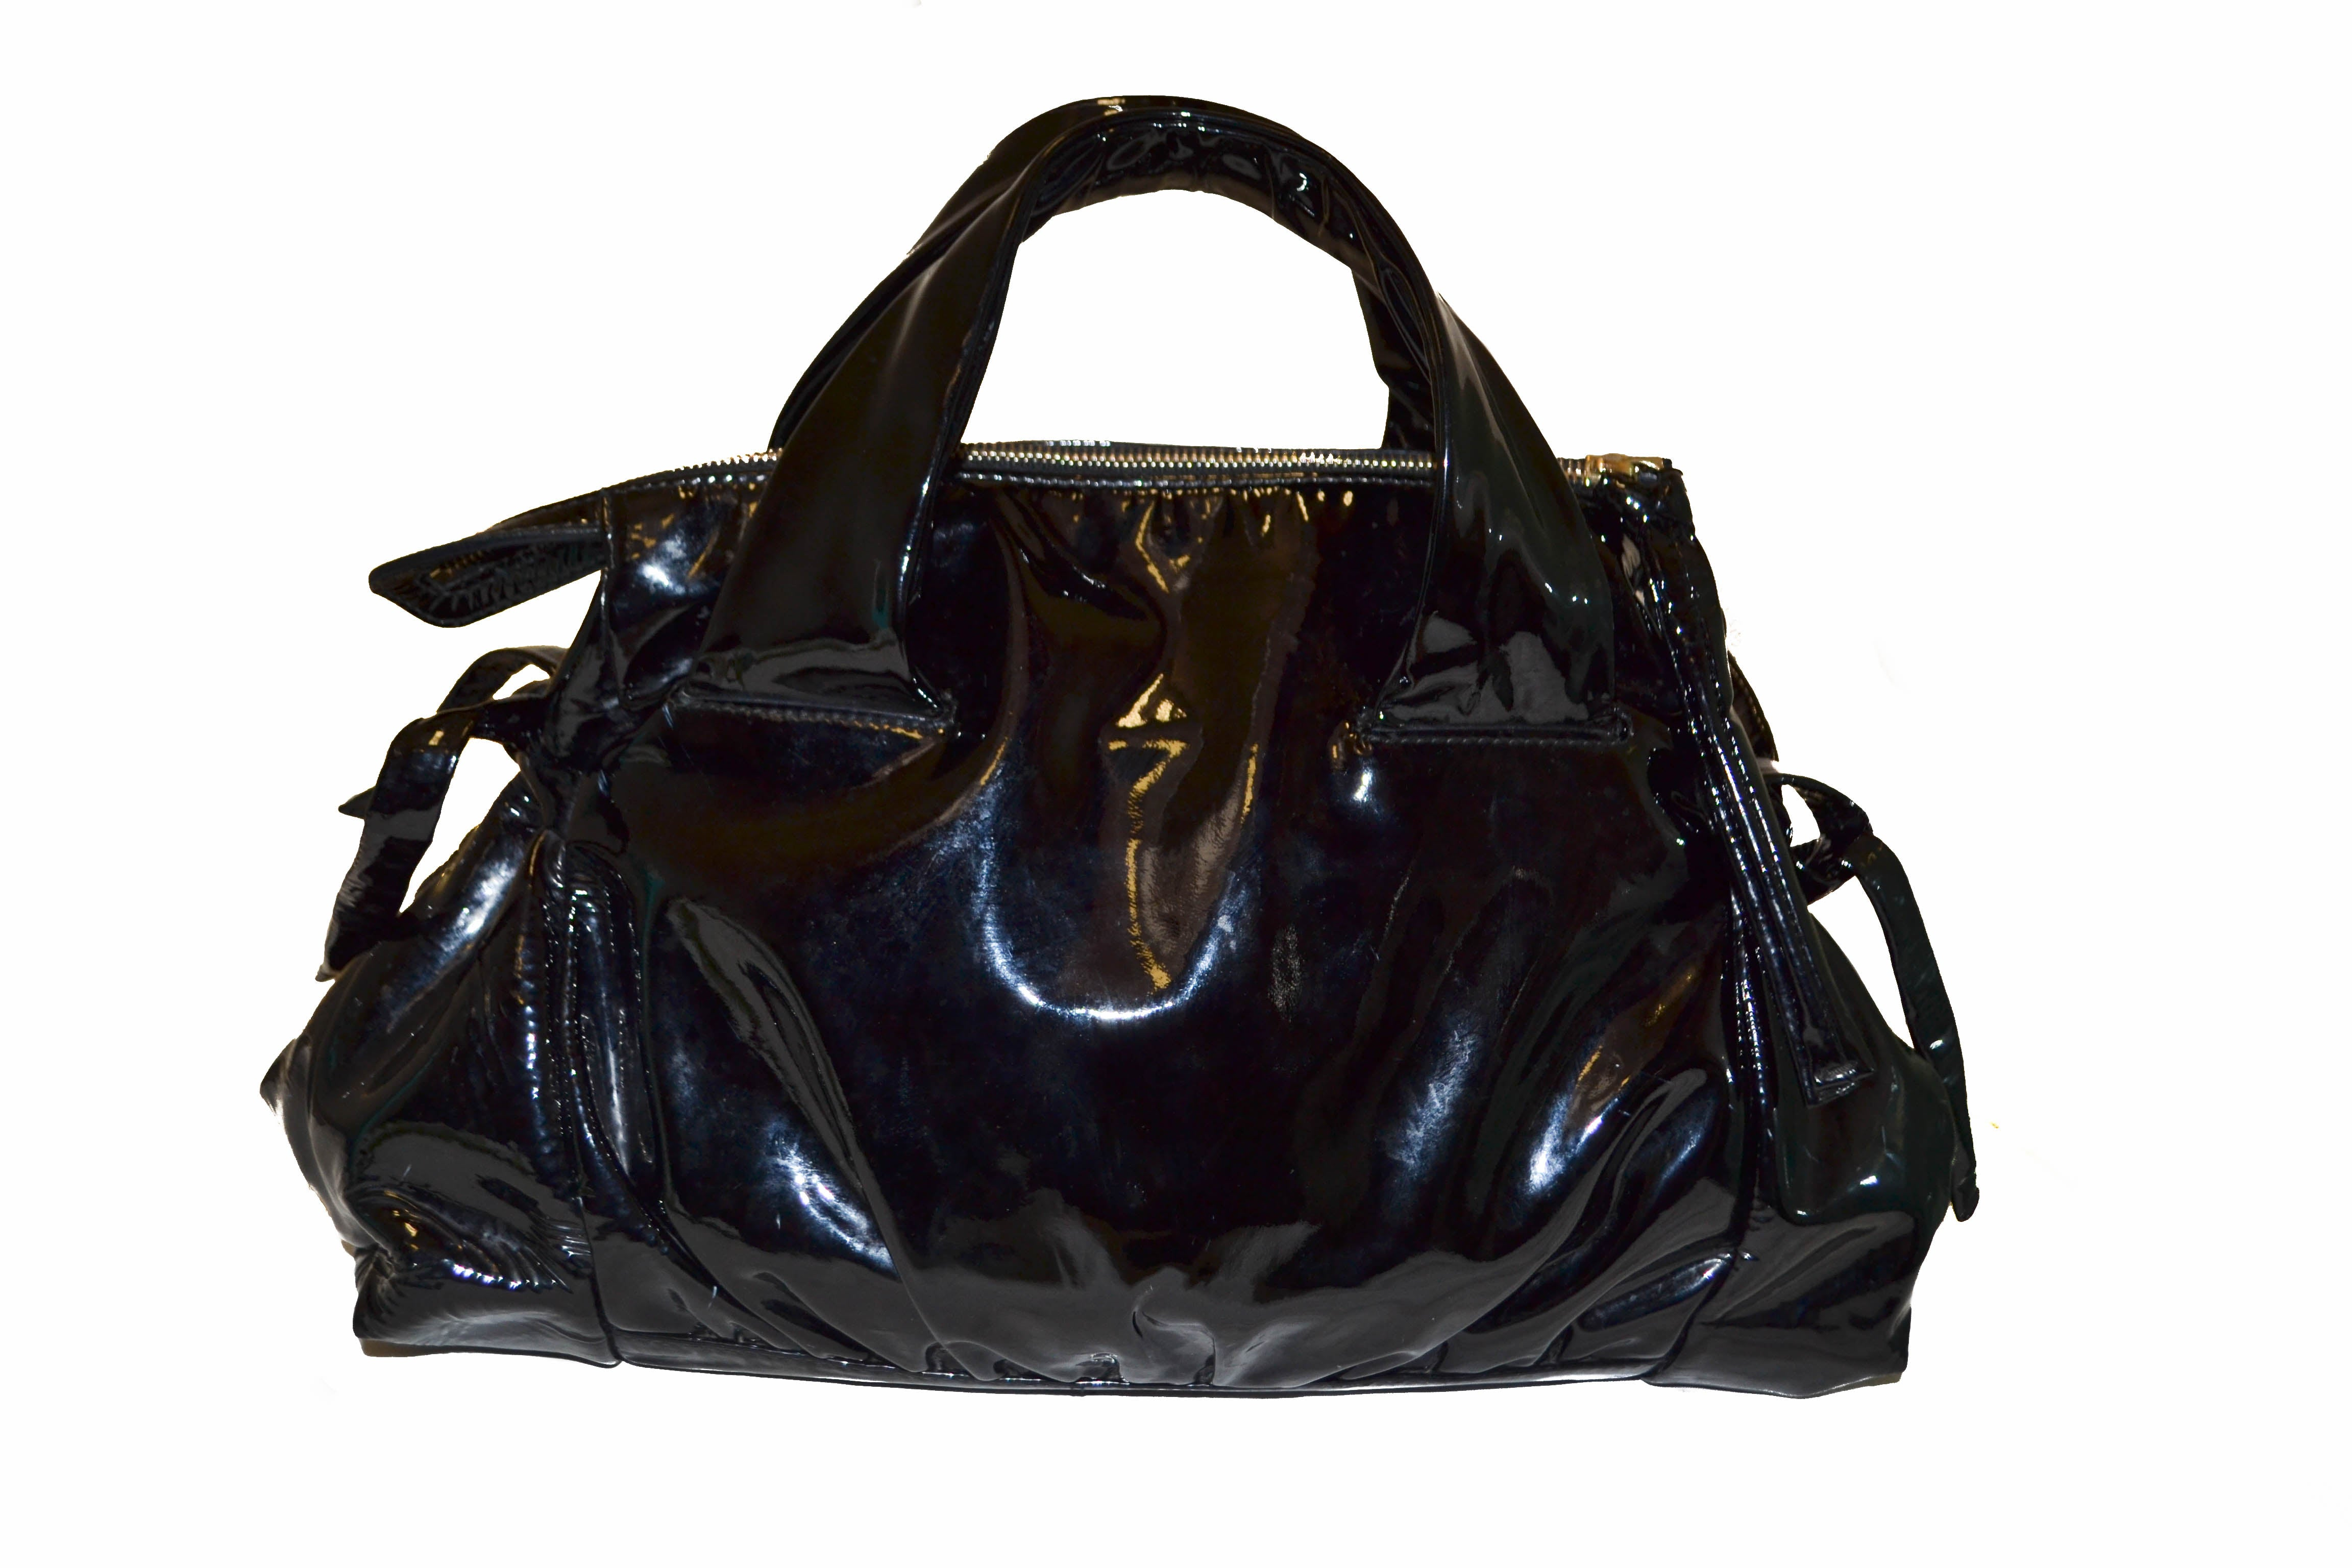 ... Authentic Gucci Hysteria Collection Black Patent Leather Handbag ... c1861eee63b45